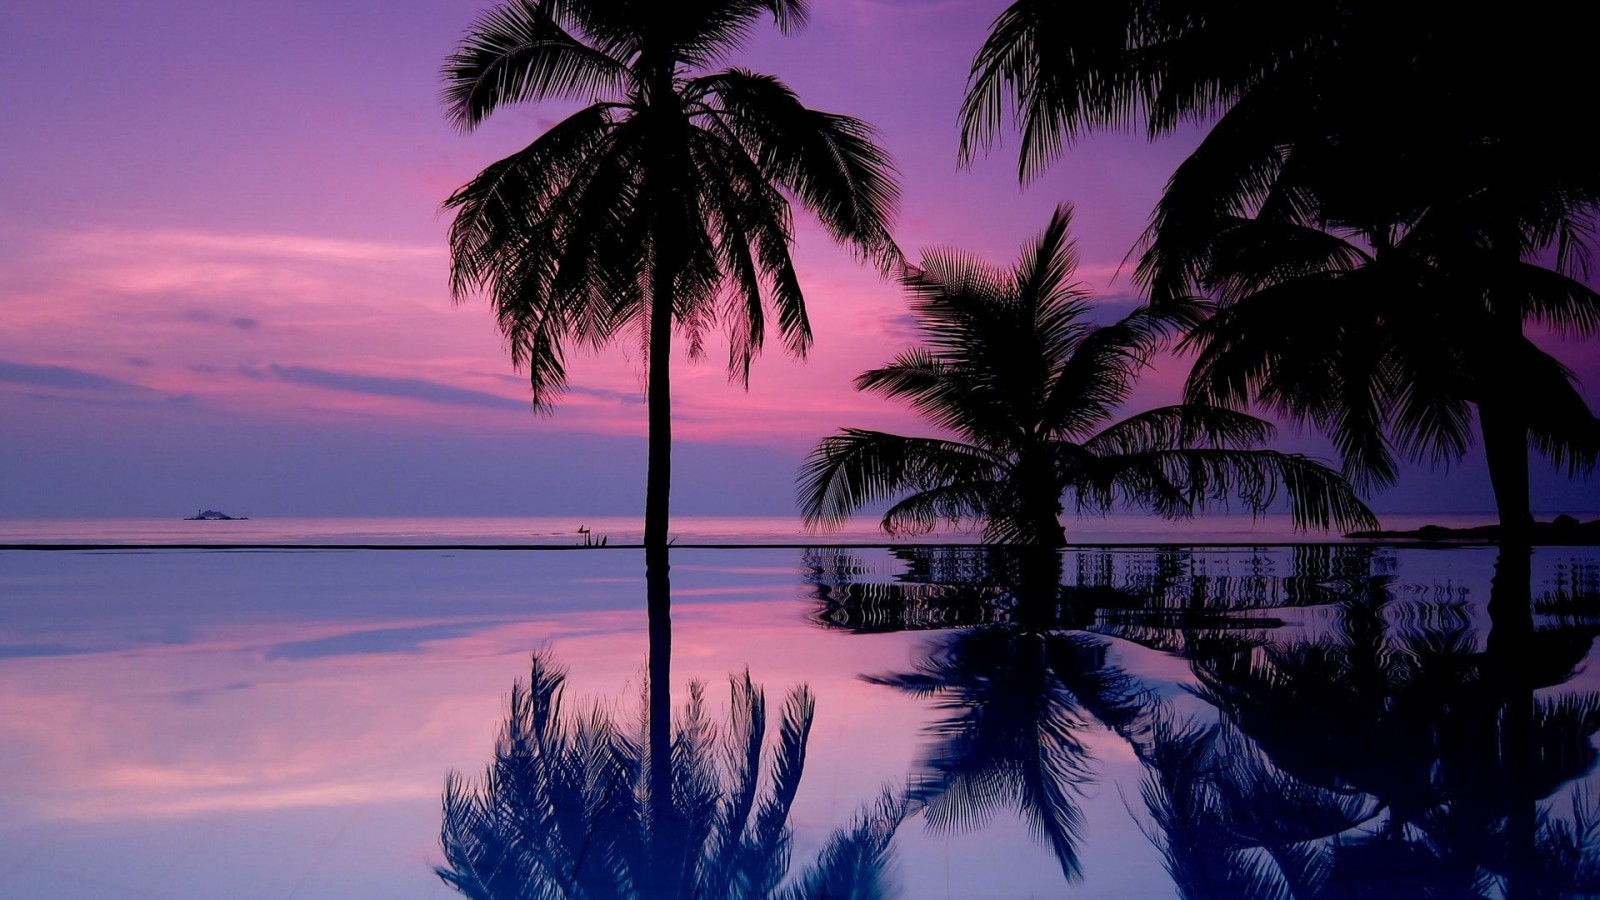 The great collection of purple aesthetic hd wallpapers for desktop, laptop and mobiles. Coconut Trees Reflection On Water Under Purple Cloudy Sky